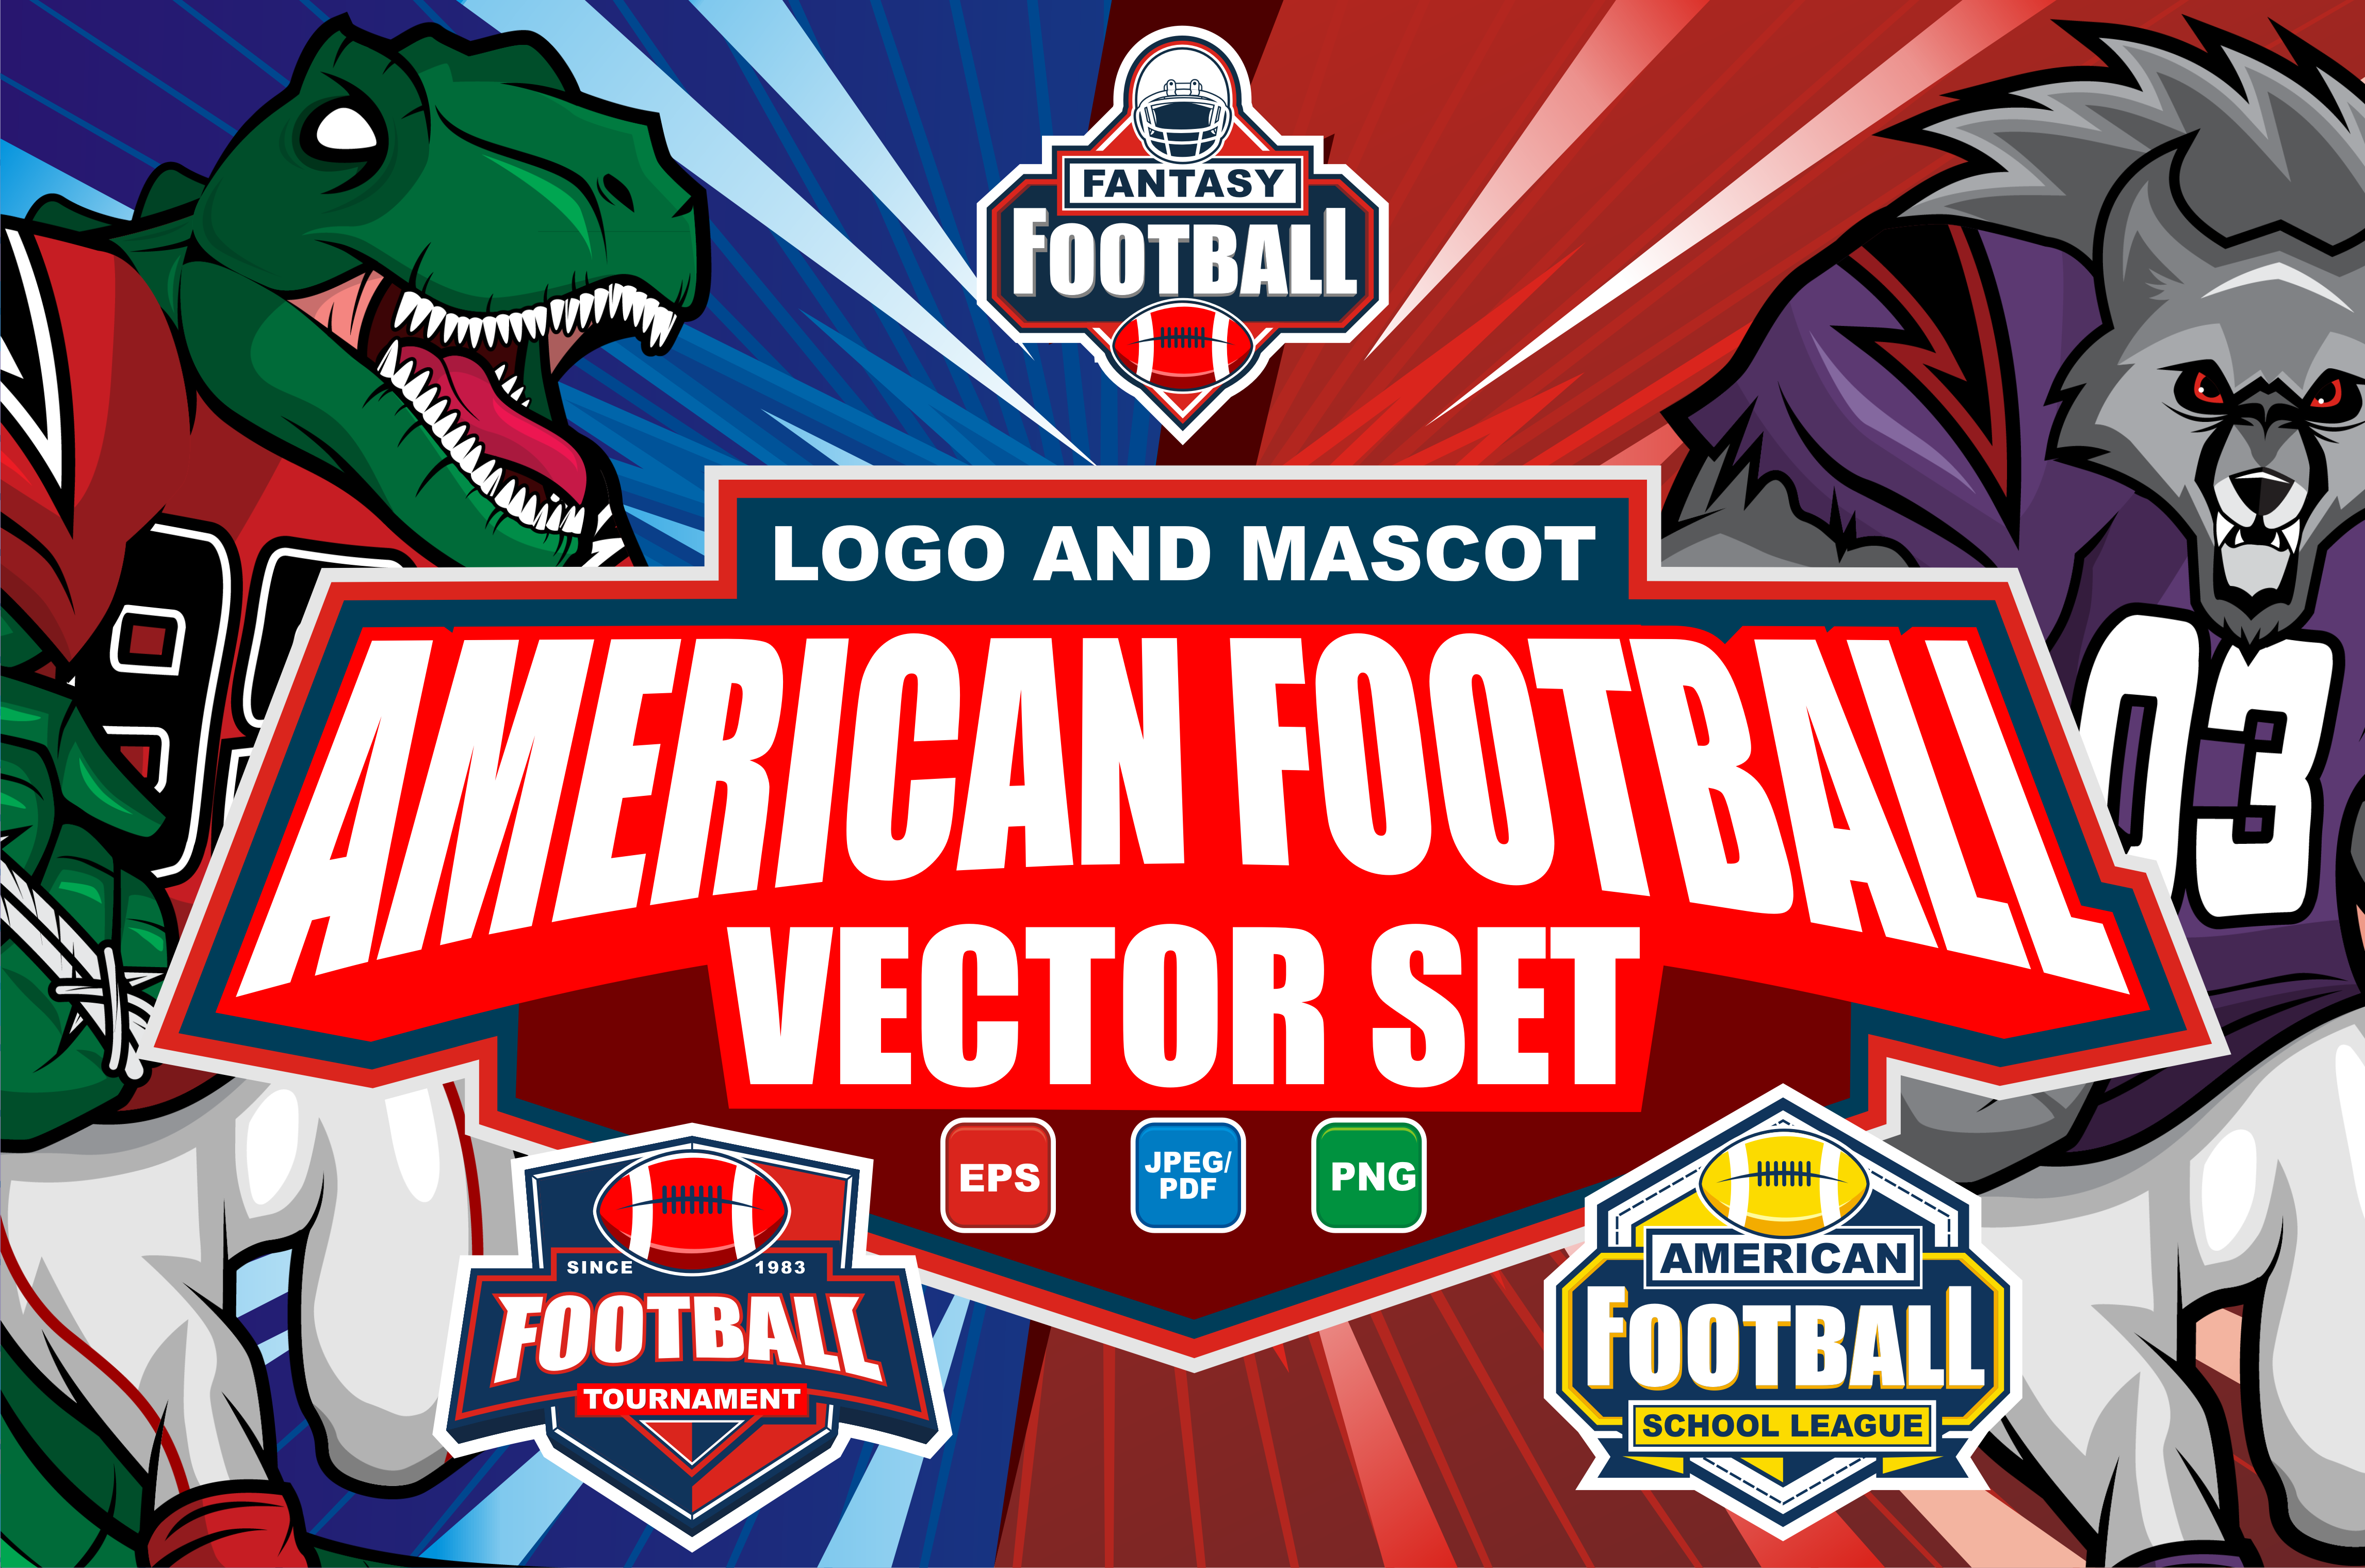 Download Free American Football Vector Set Graphic By Azkaryzki Creative Fabrica for Cricut Explore, Silhouette and other cutting machines.